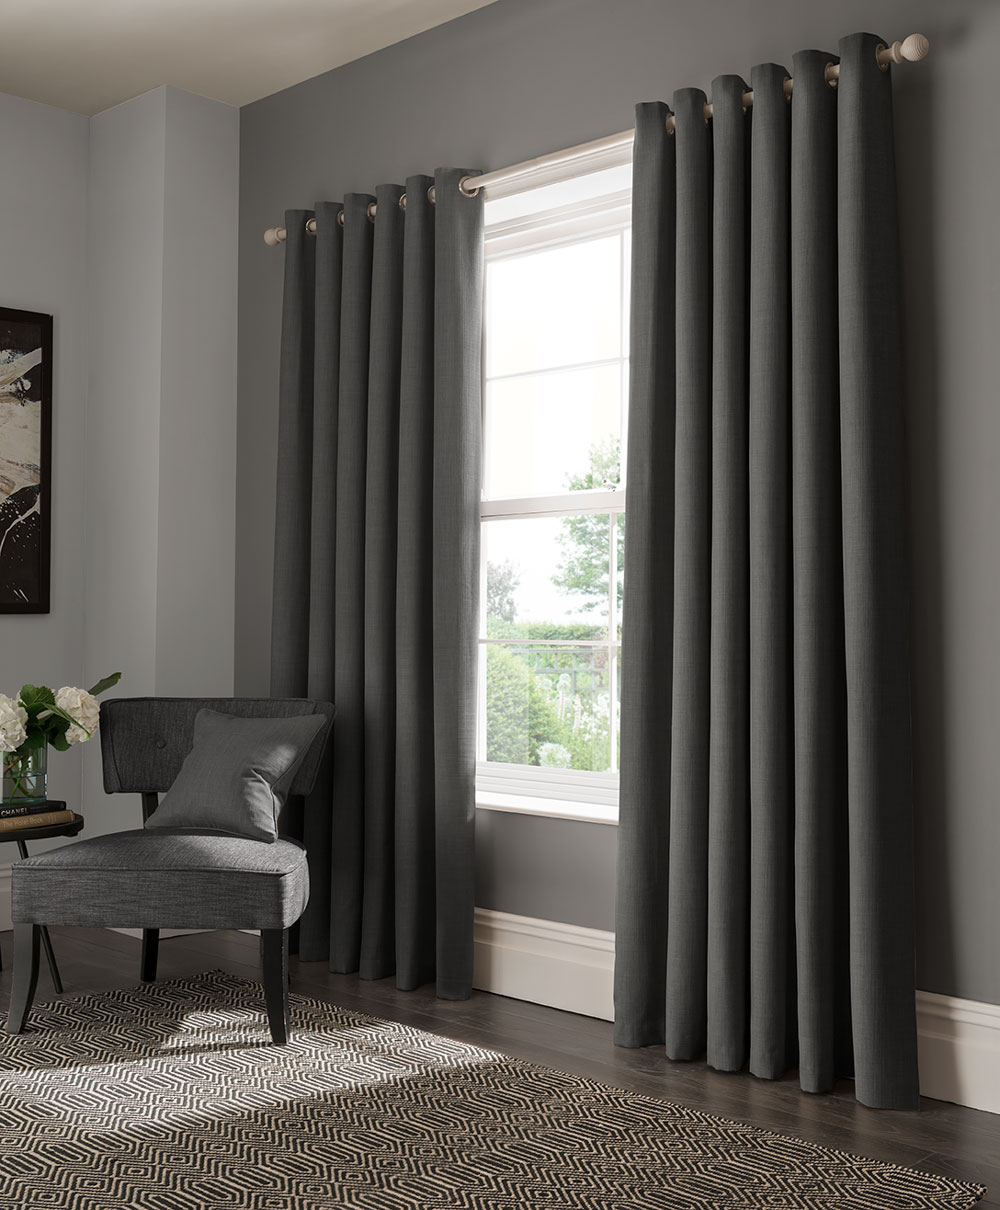 Studio G Elba Eyelet Curtains Steel Ready Made Curtains - Product code: M1104/04/90X9